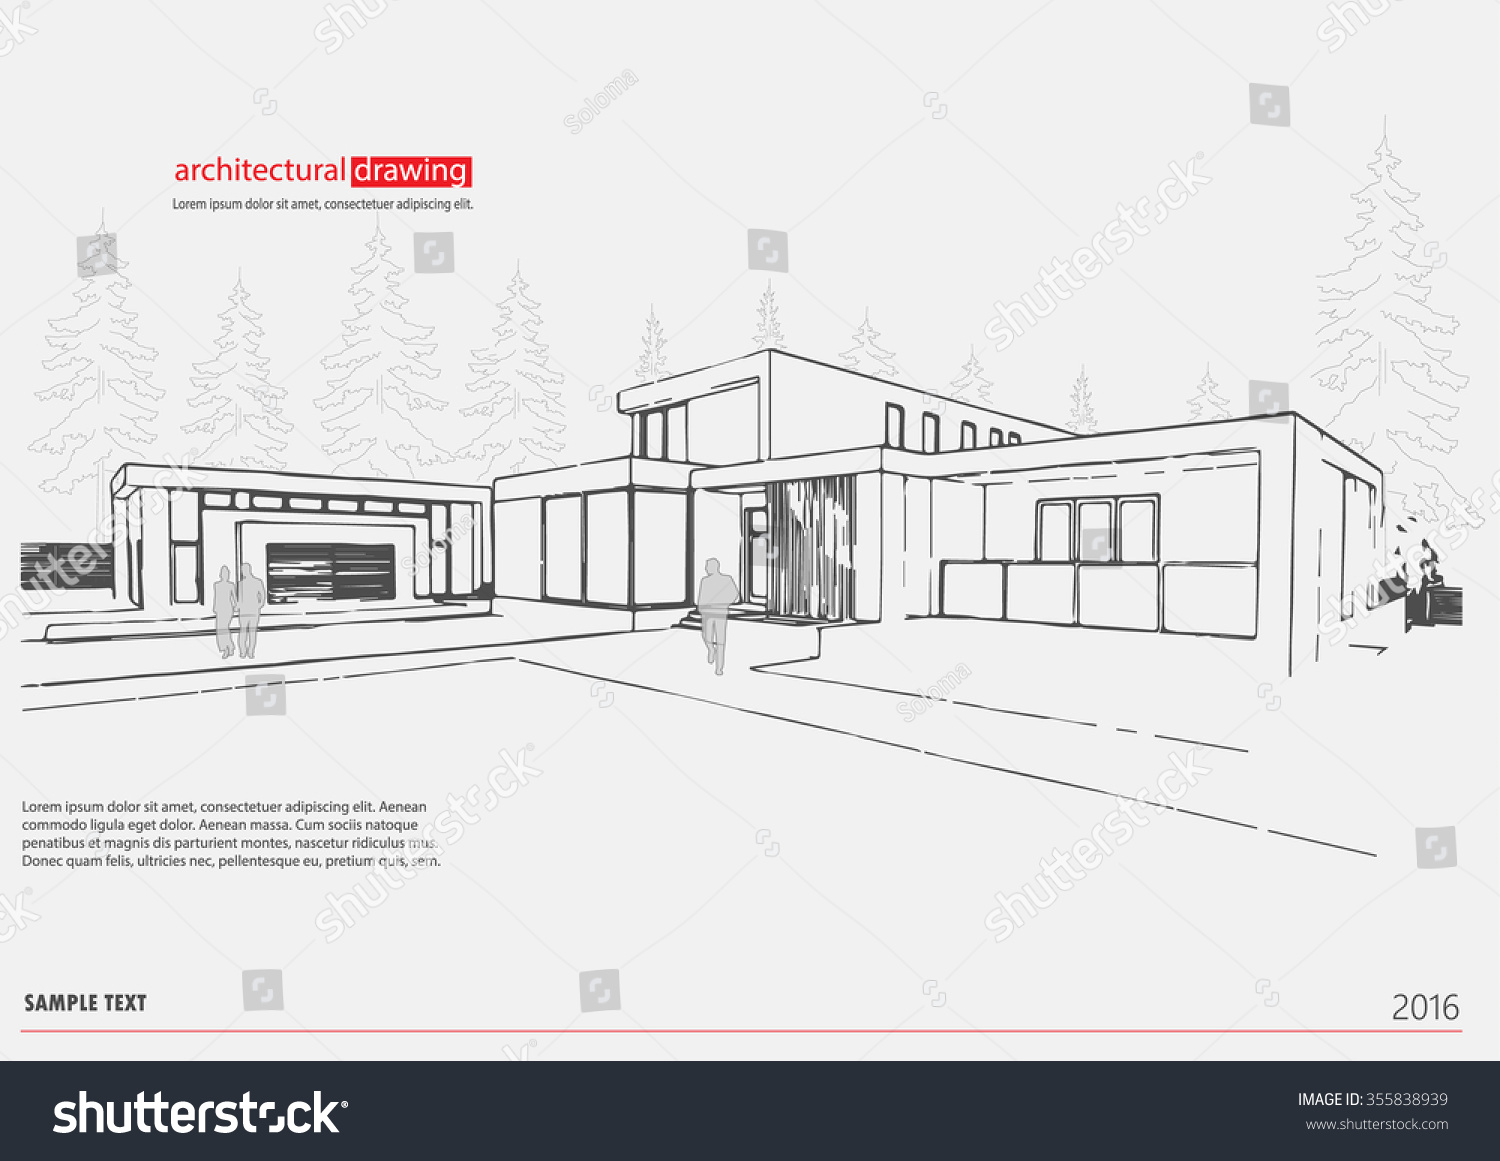 Classy 10+ Architecture Drawing Template Decorating Design Of 15+ ...